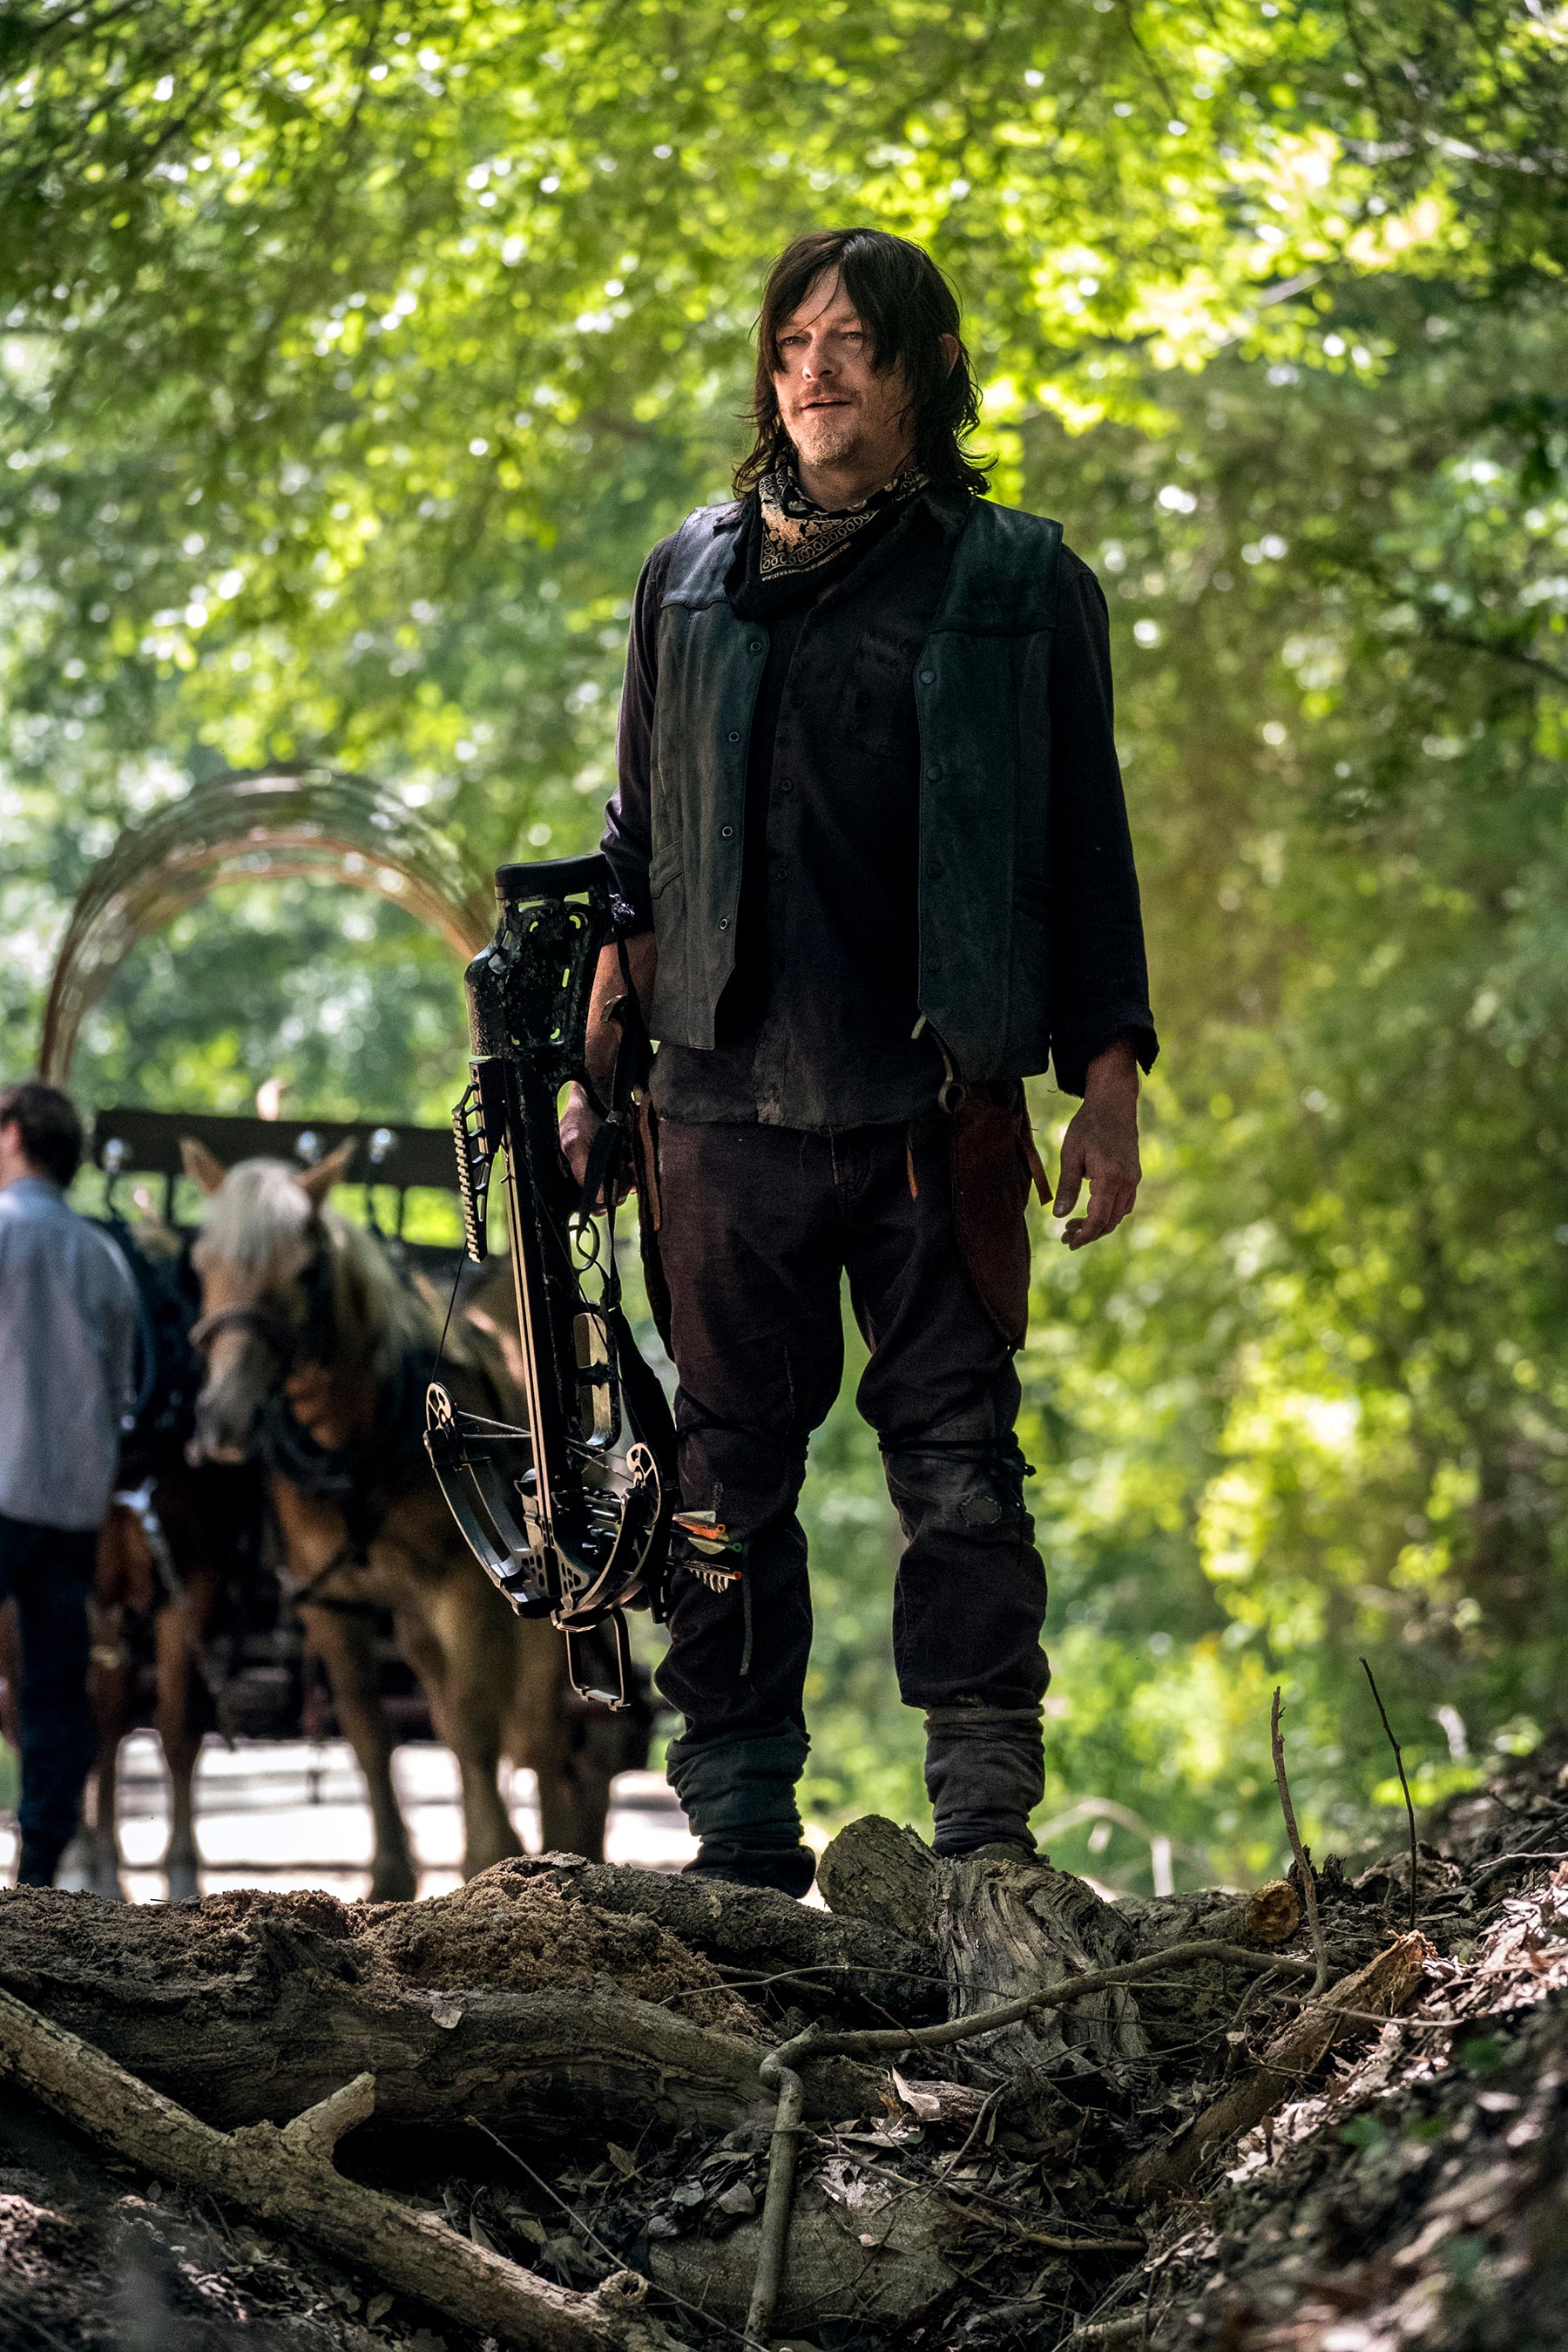 The Walking Dead: Norman Reedus imbraccia le armi